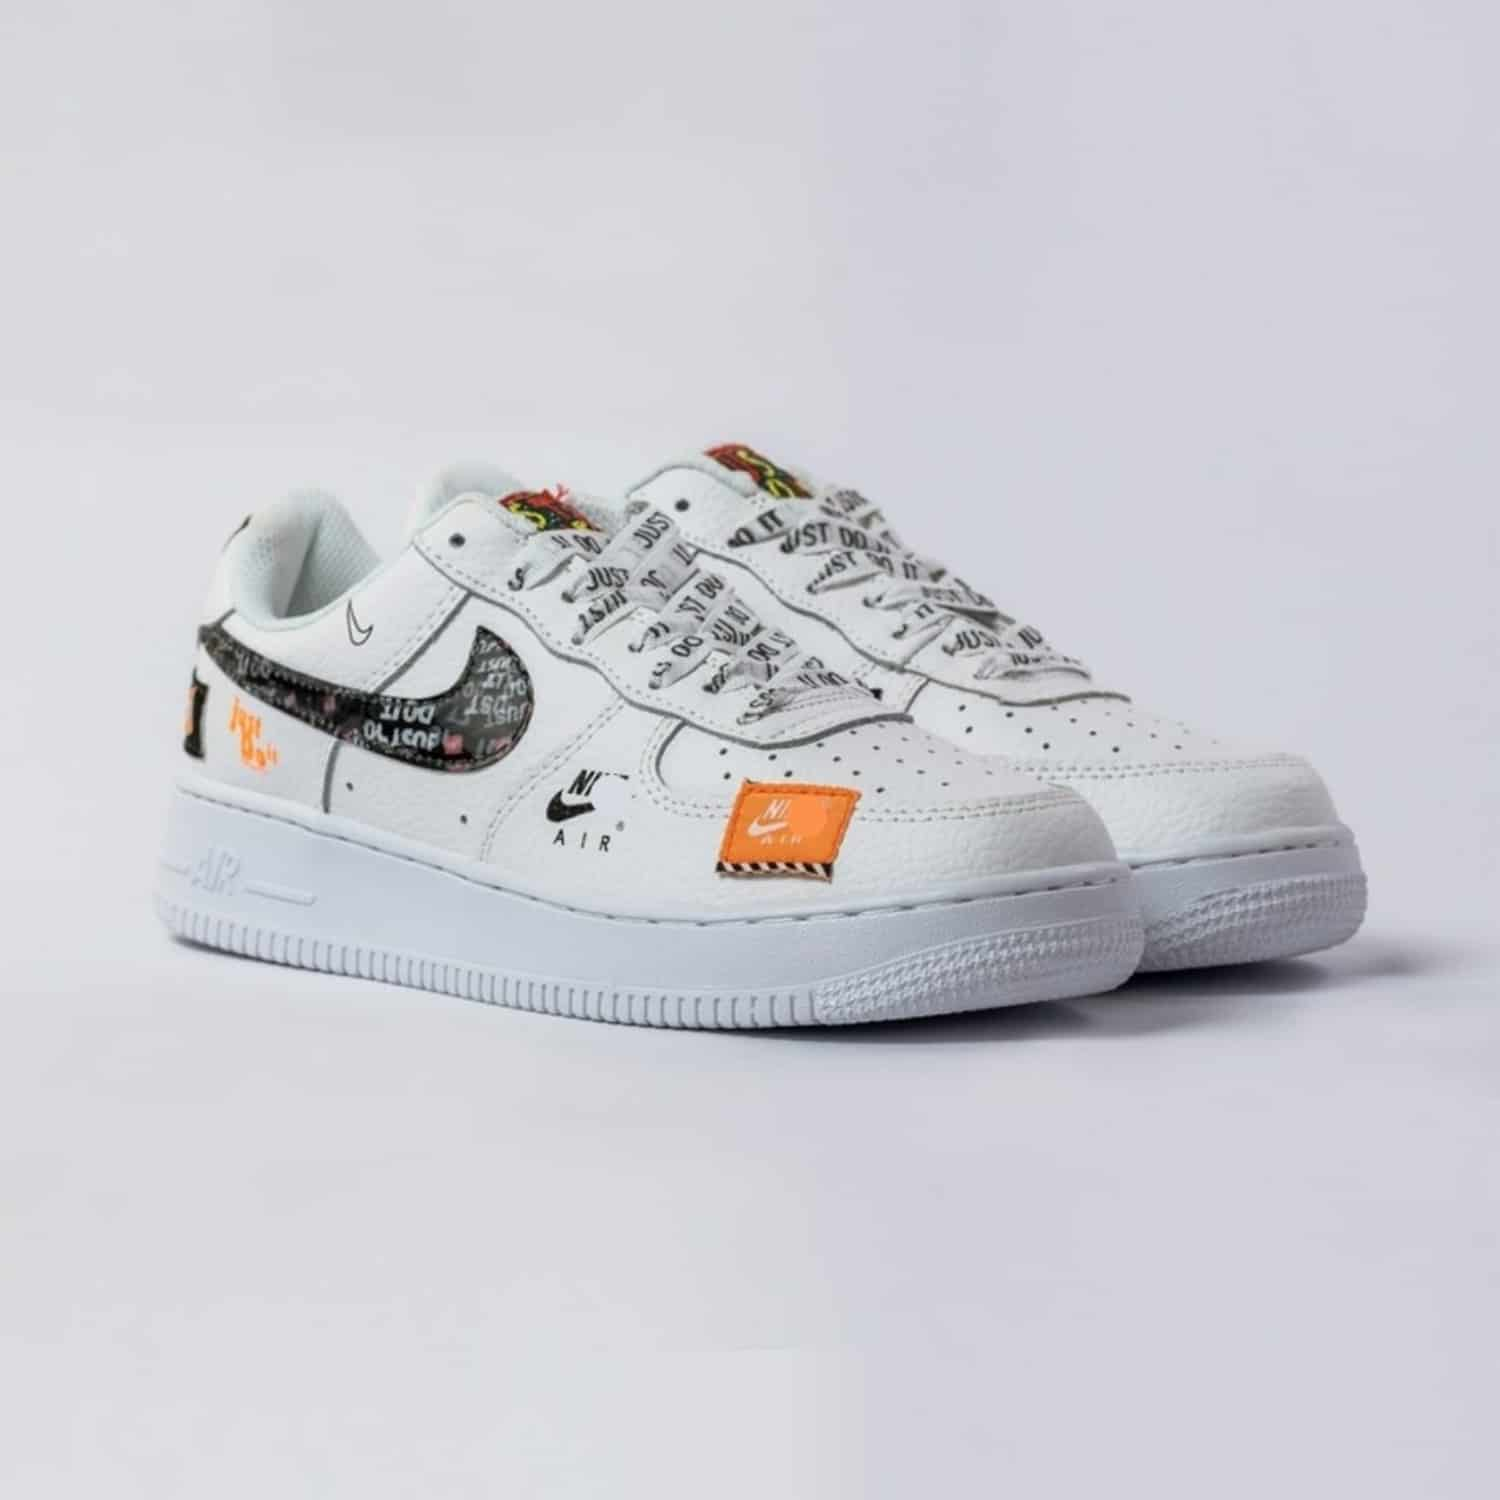 Giày Thể Thao Air Force 1 Low 'Just Do It' Nam || Nữ